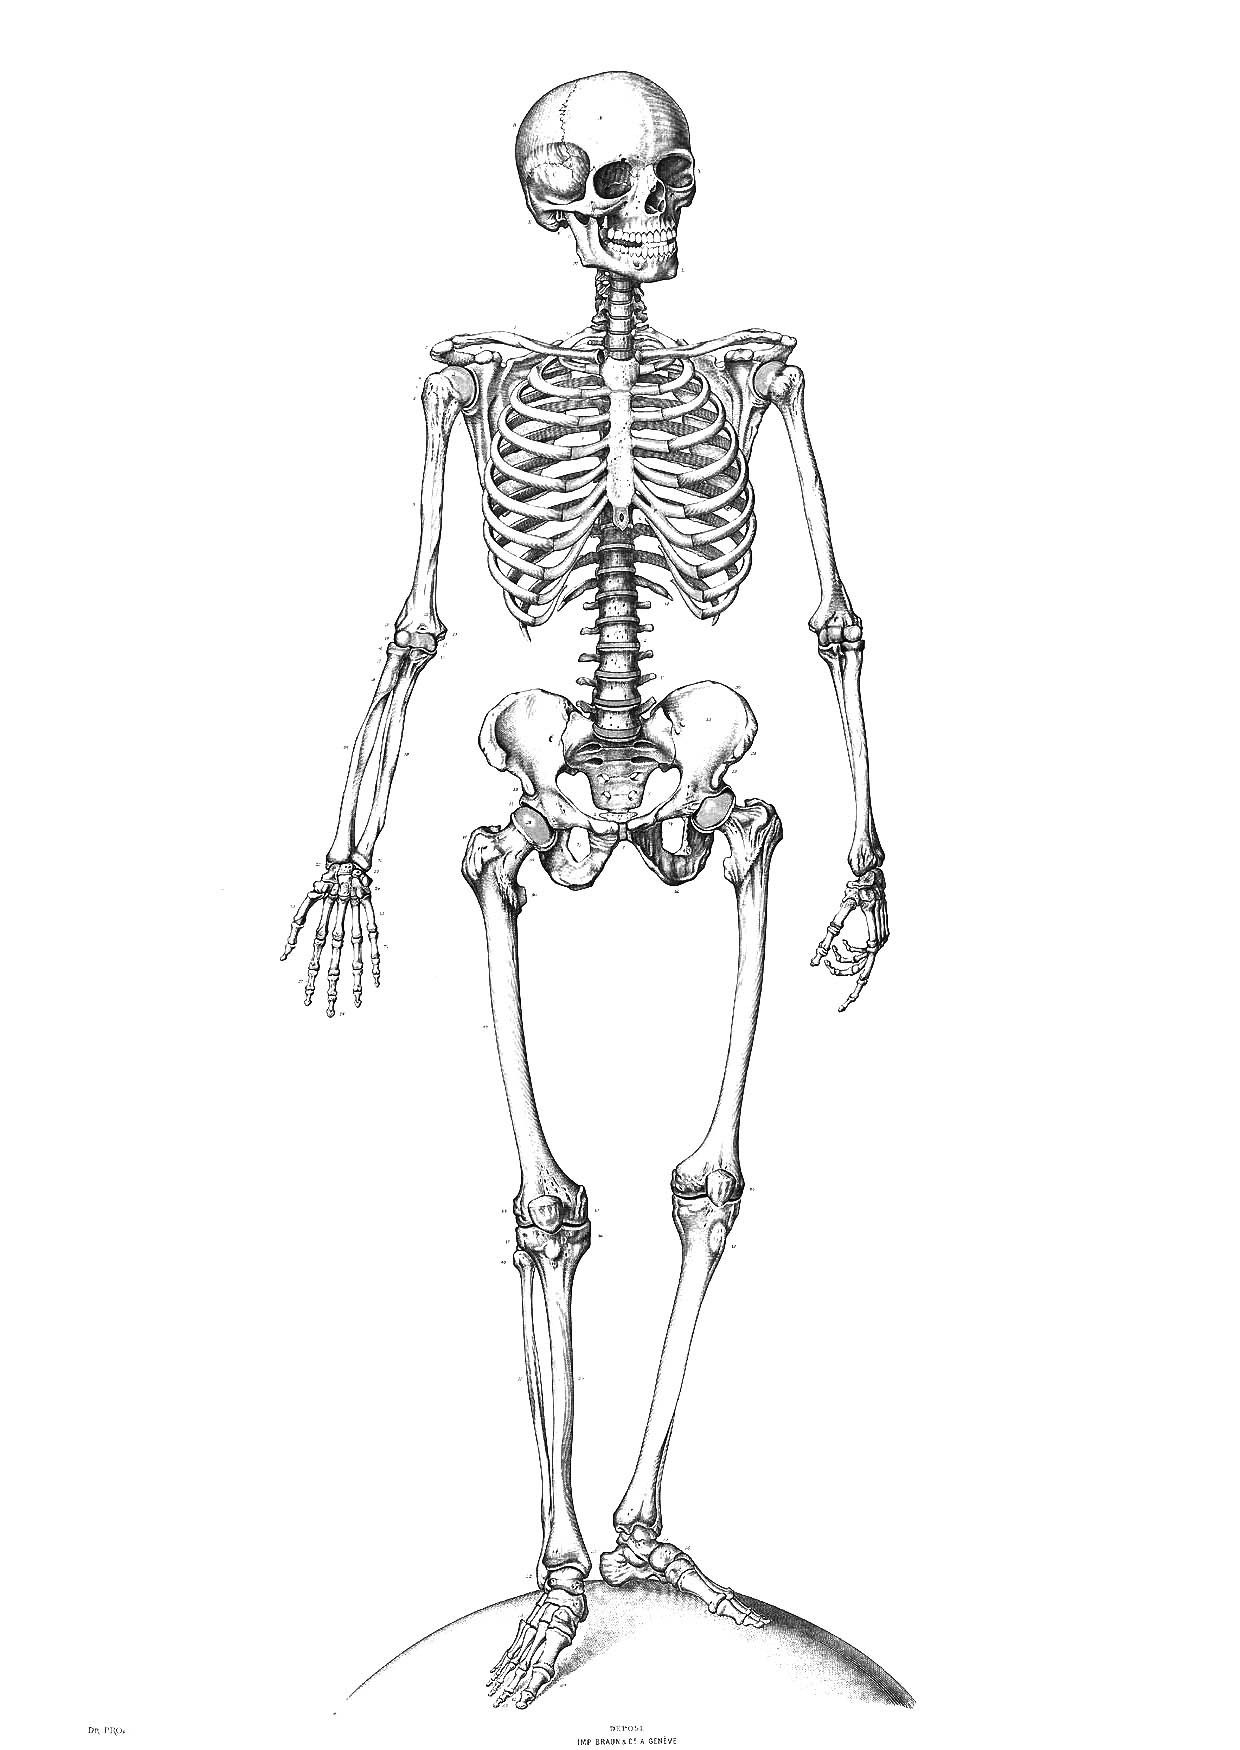 small resolution of unlabeled human skeleton diagram unlabeled human skeleton diagram blank human skeleton diagram printable human skeleton